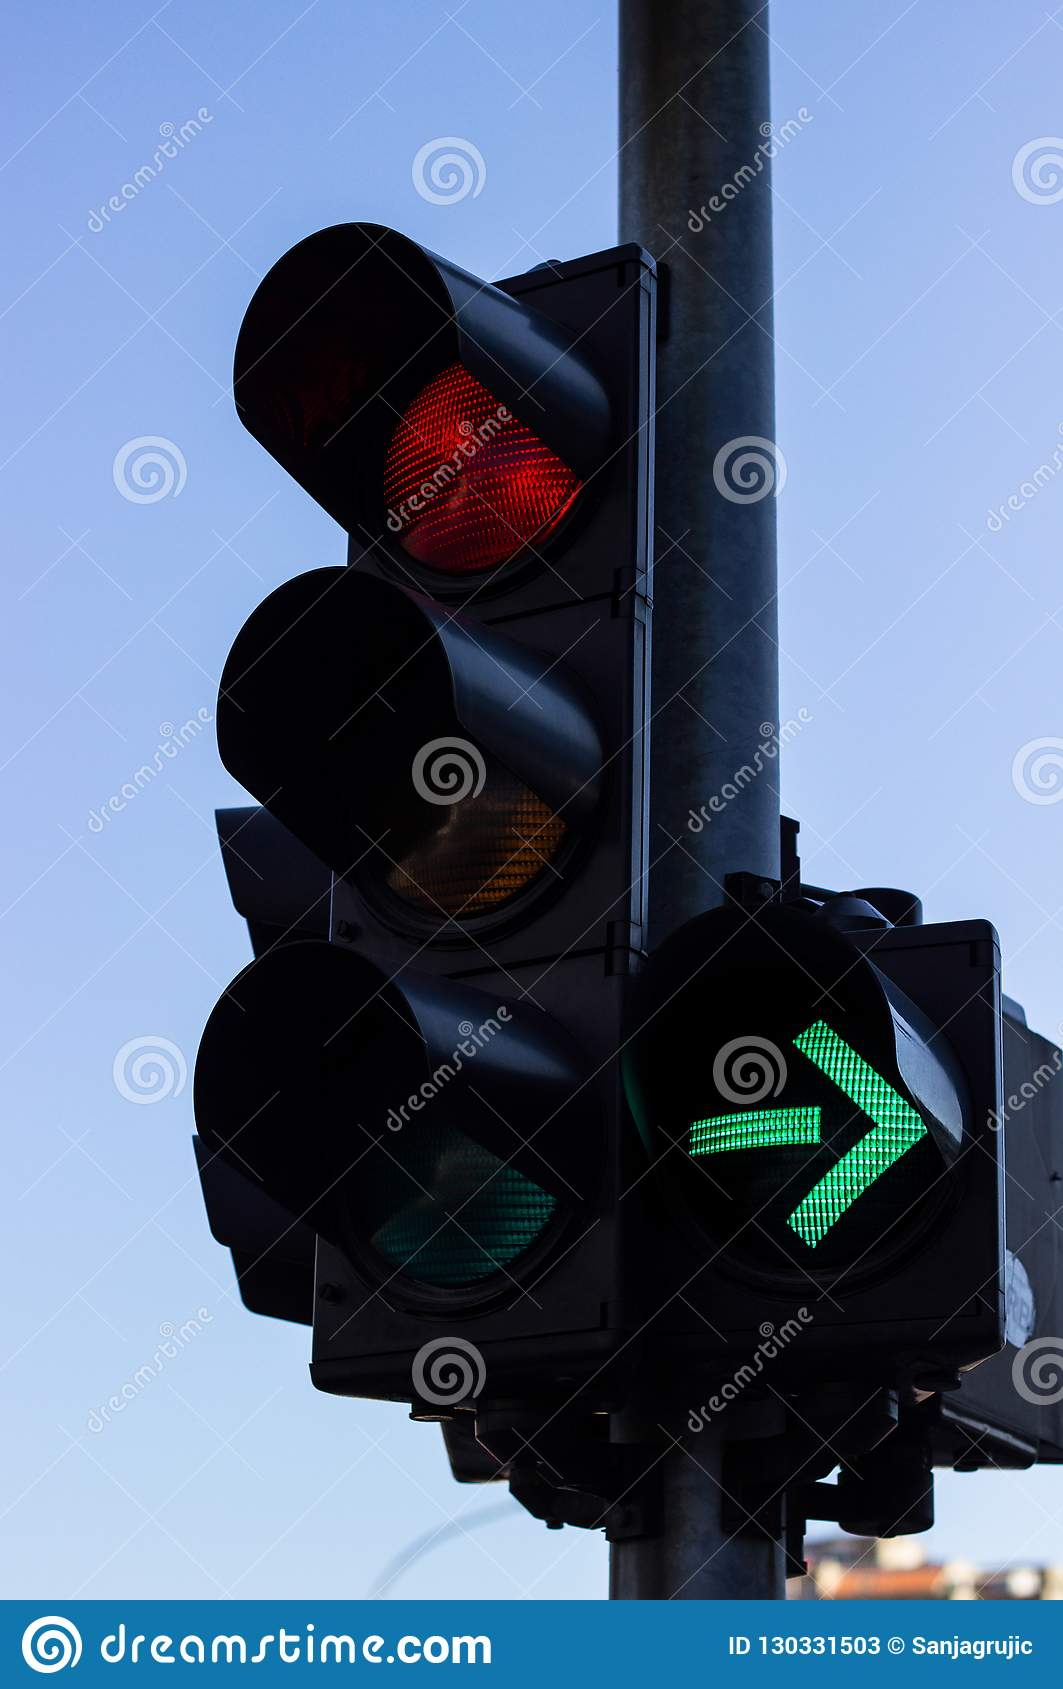 Red Color And Right Green Arrow On The Traffic Light Stock